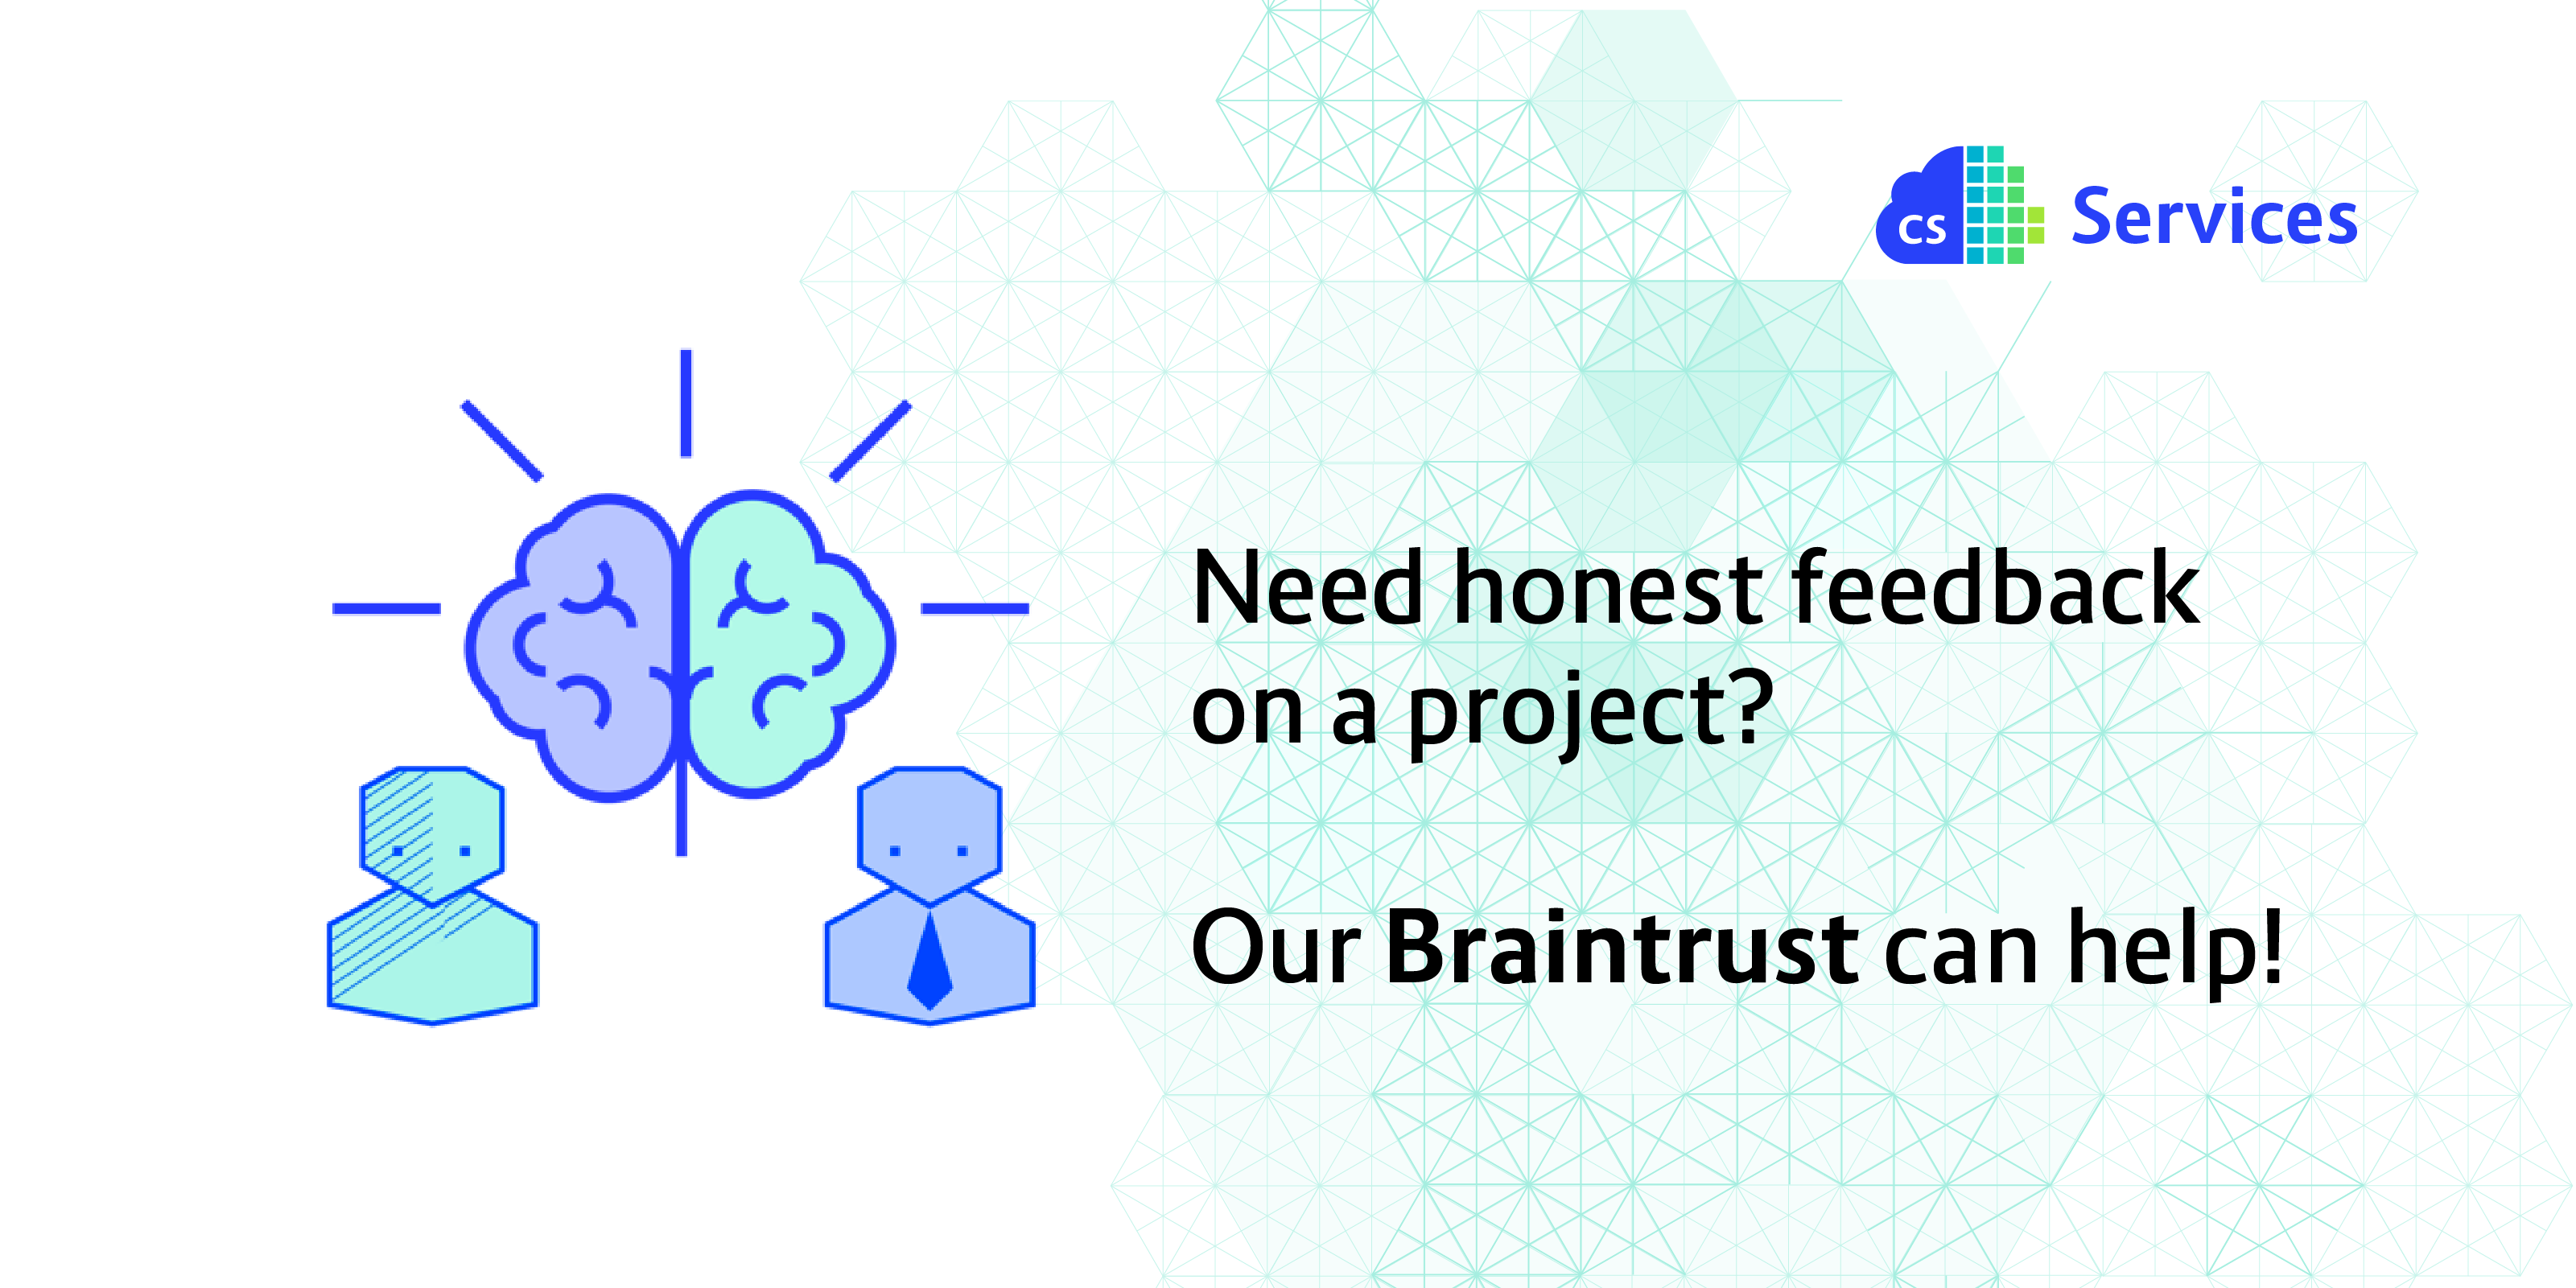 Braintrust service at Container Solutions